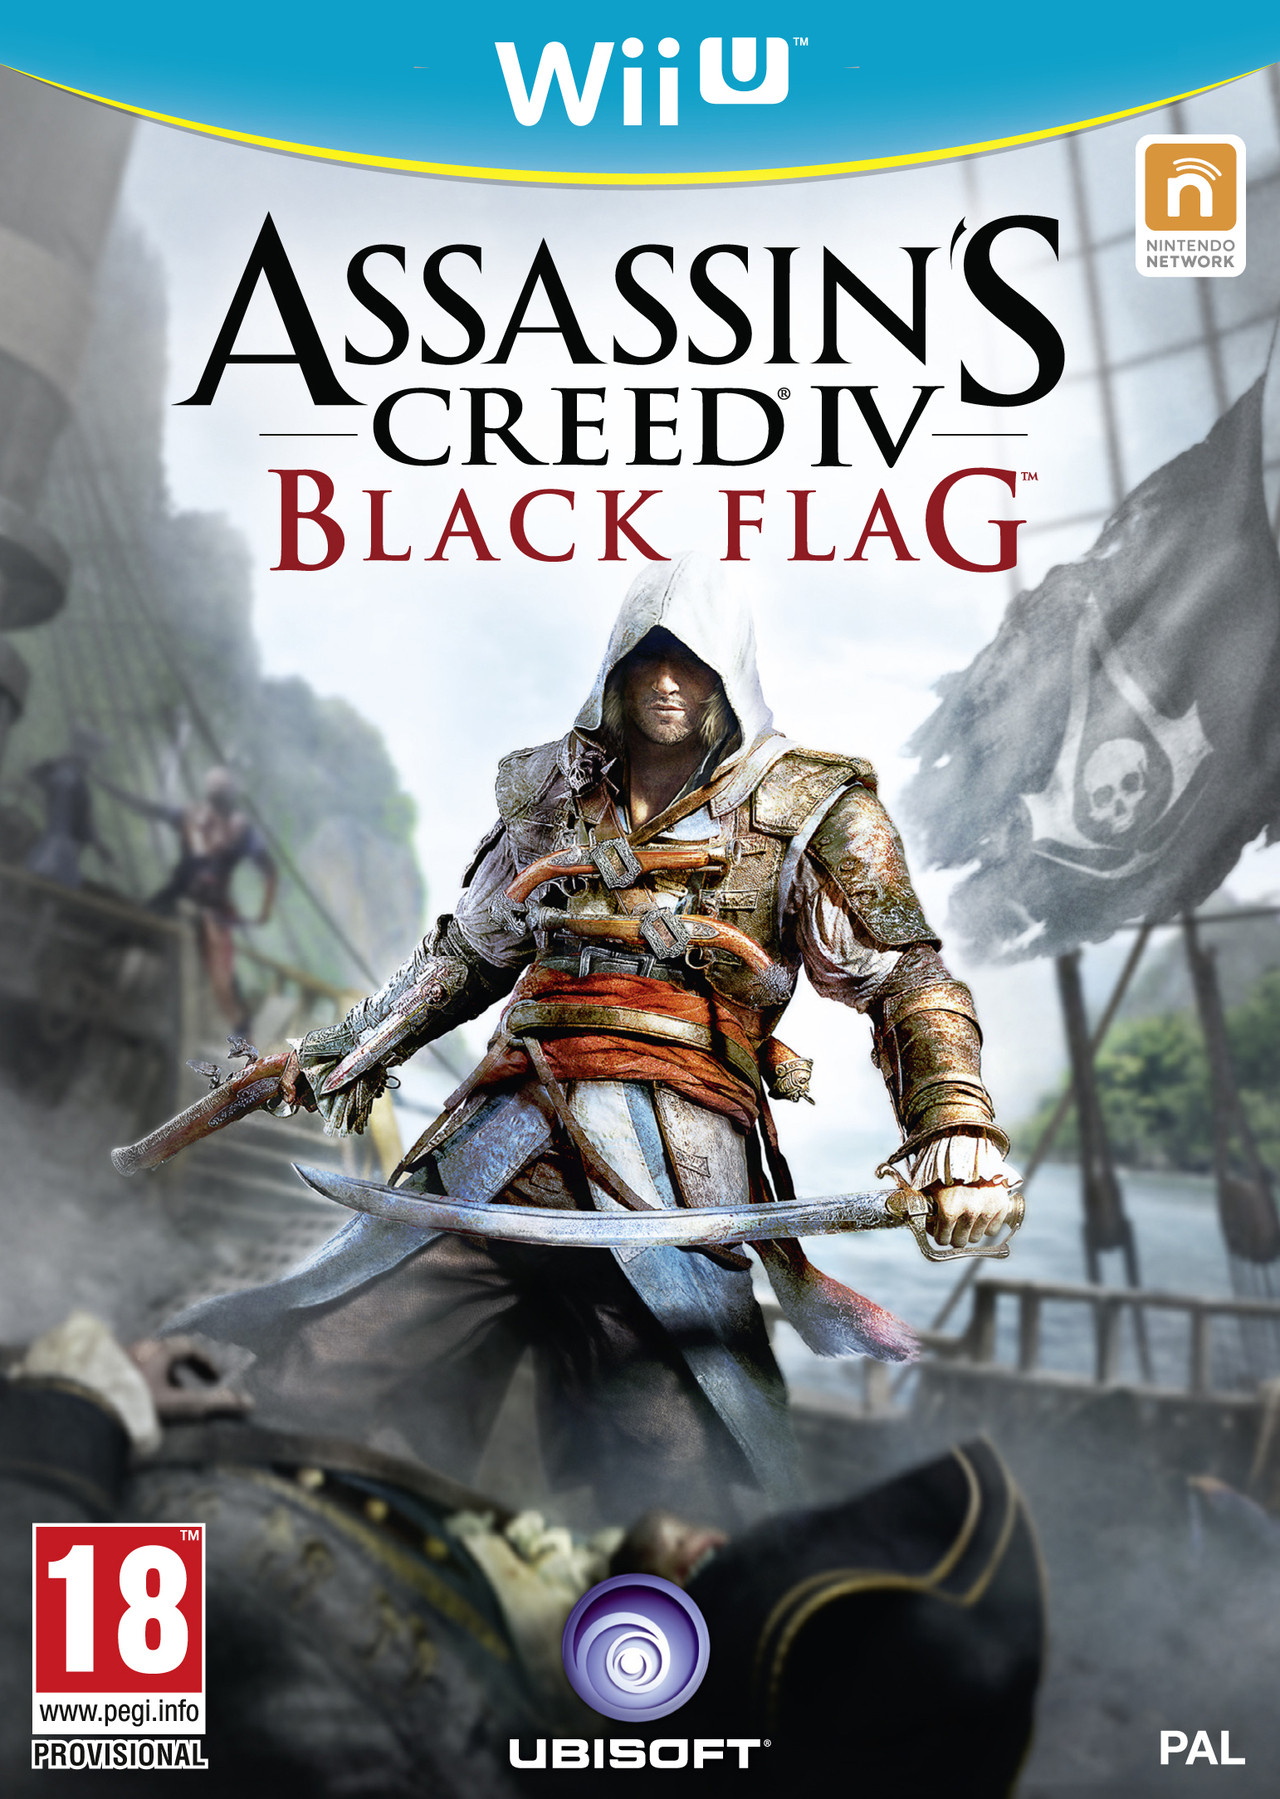 Assassins Creed IV Black Flag Announced Wii U Cover